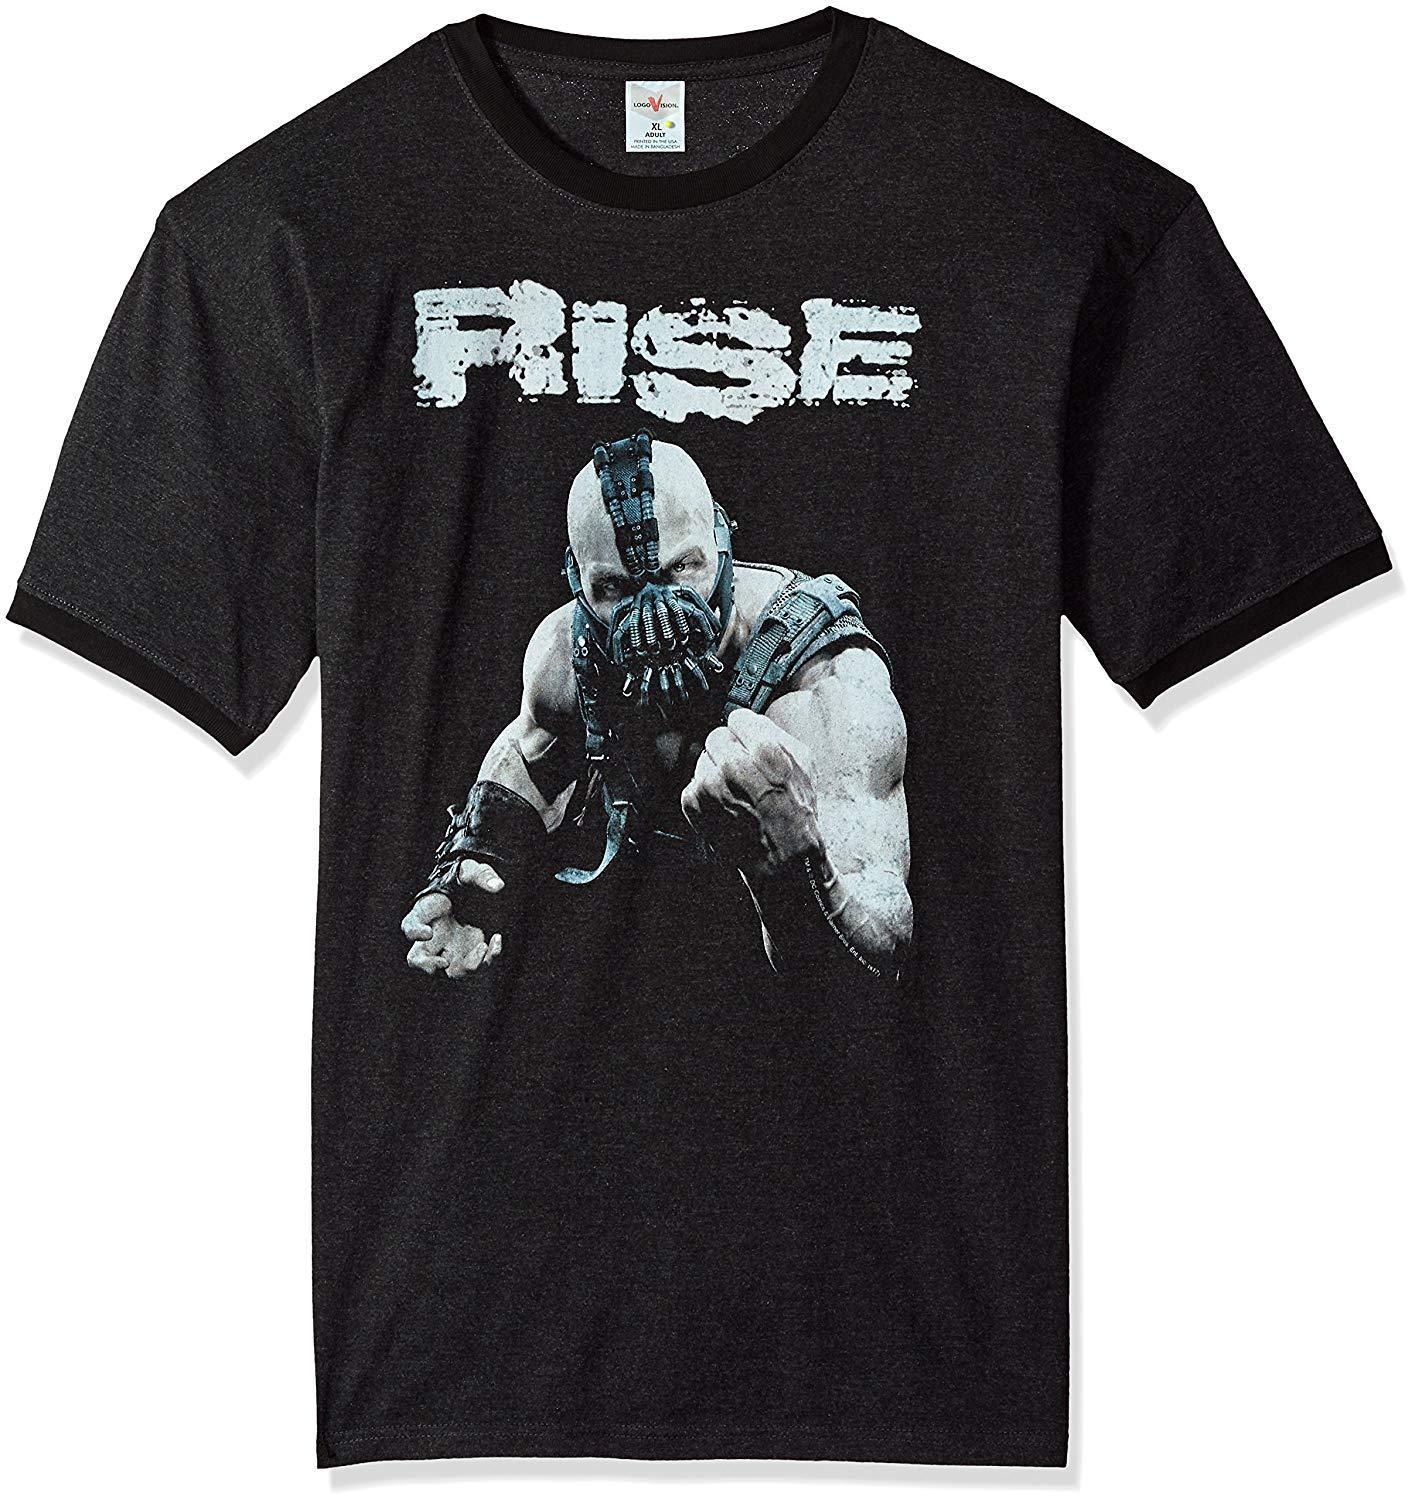 3750c7cea Trevco Men's Ordenanza Dark Knight Rises Short Sleeve T-Shirt, Black ...